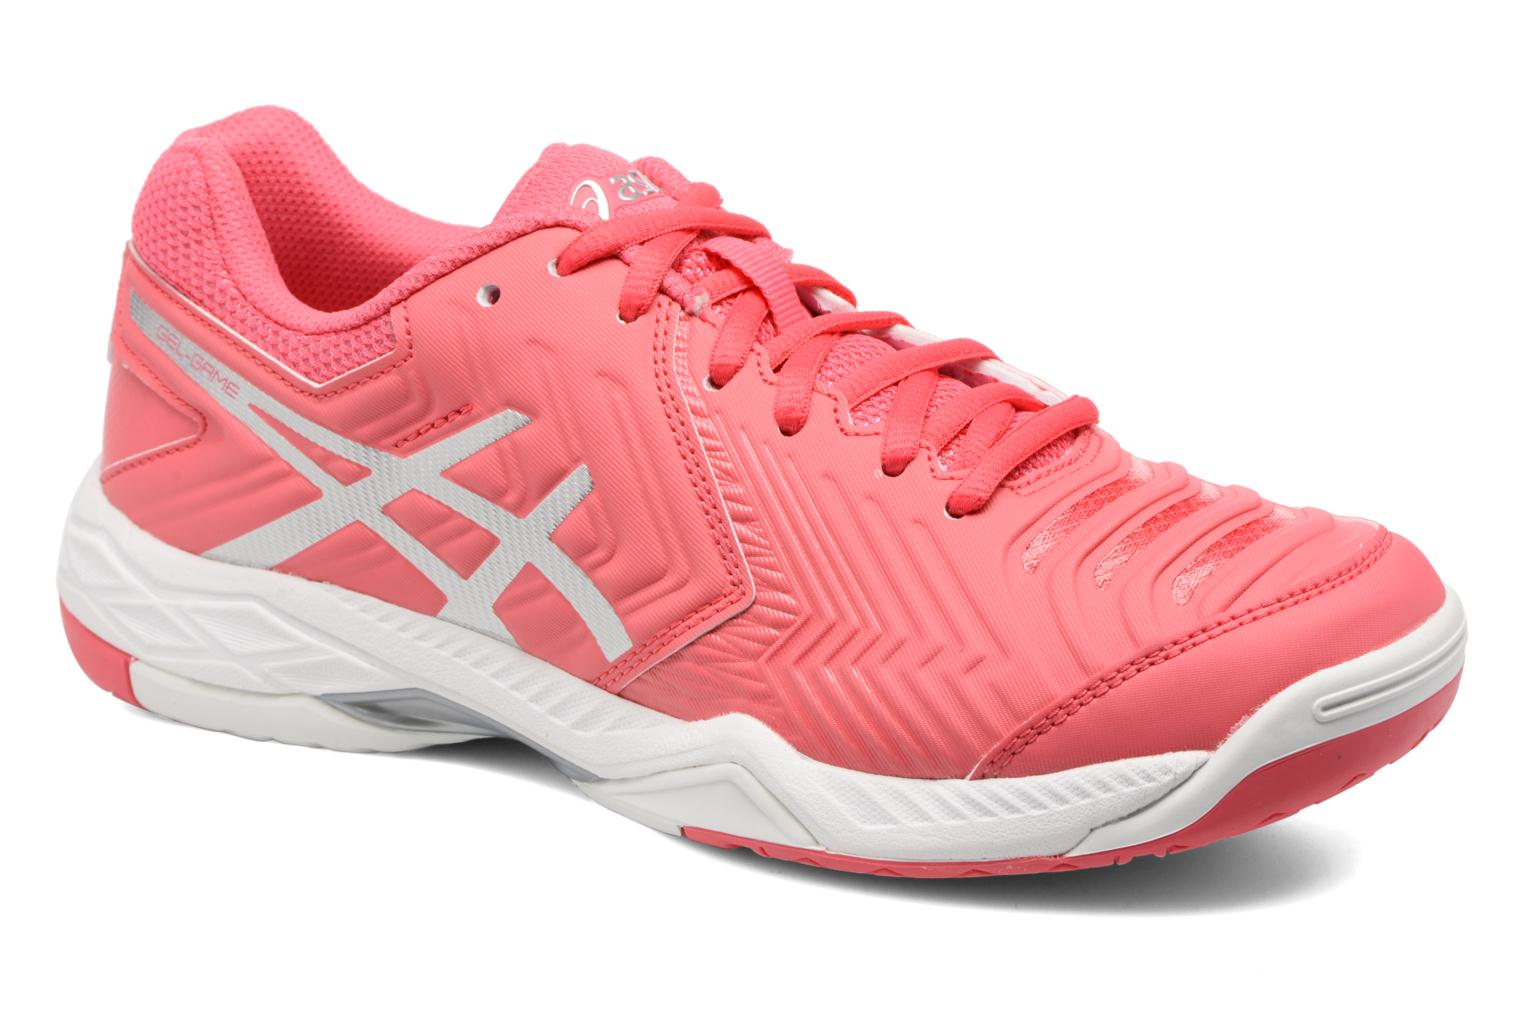 Gel Silver 6 White Red Rouge Game Asics 1dwqSPw